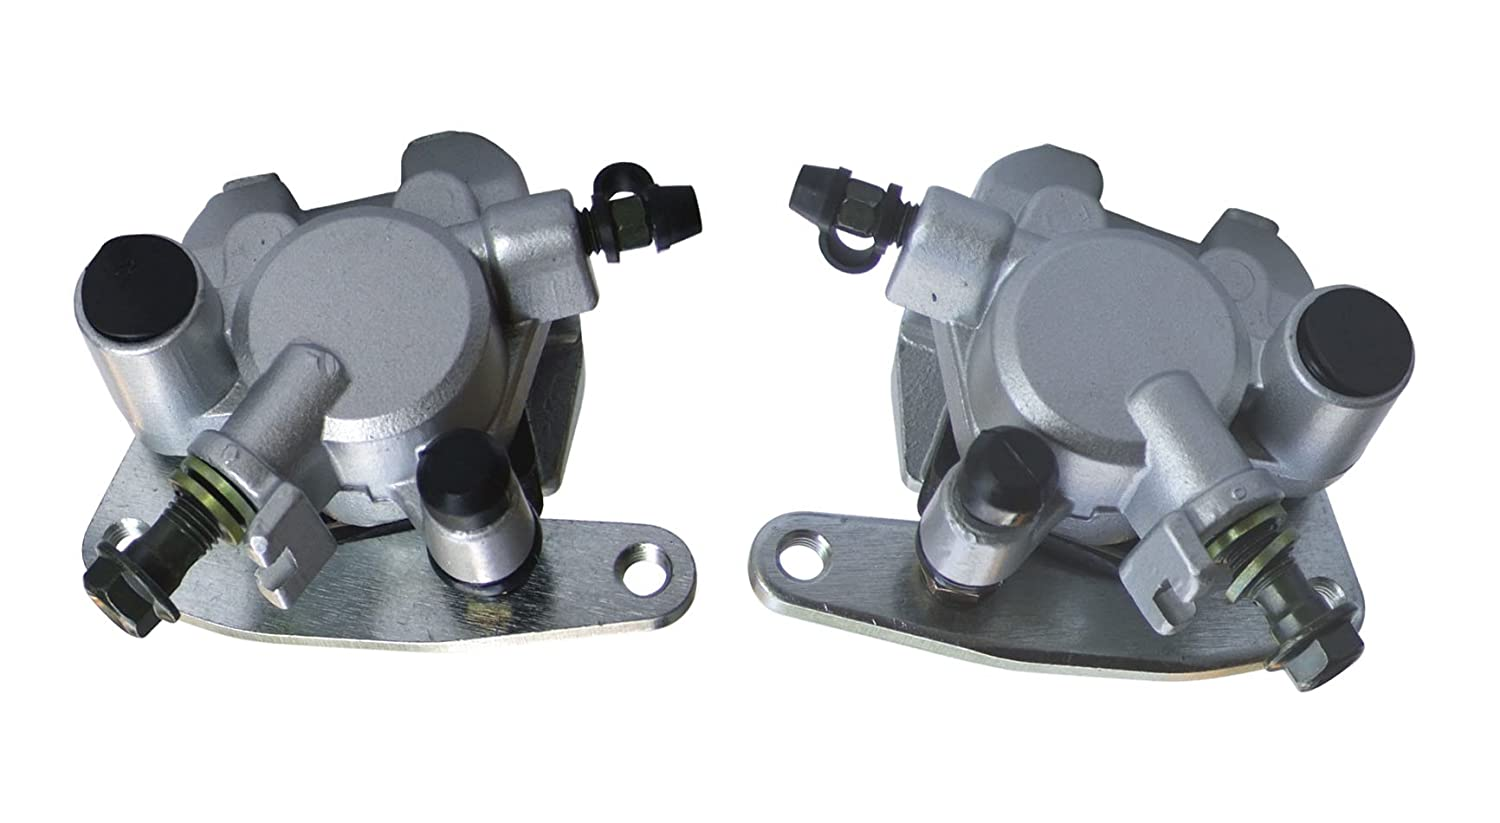 shamofeng Front Brake Caliper Left and Right Set with Pads For Yamaha GRIZZLY 660 2002 03 04 05 06 07 08 YFM660 YFM600F 1998 1999 2000 2001 2002 Replaces:4WV-2580U-00-00 4WV-2580U-10-00